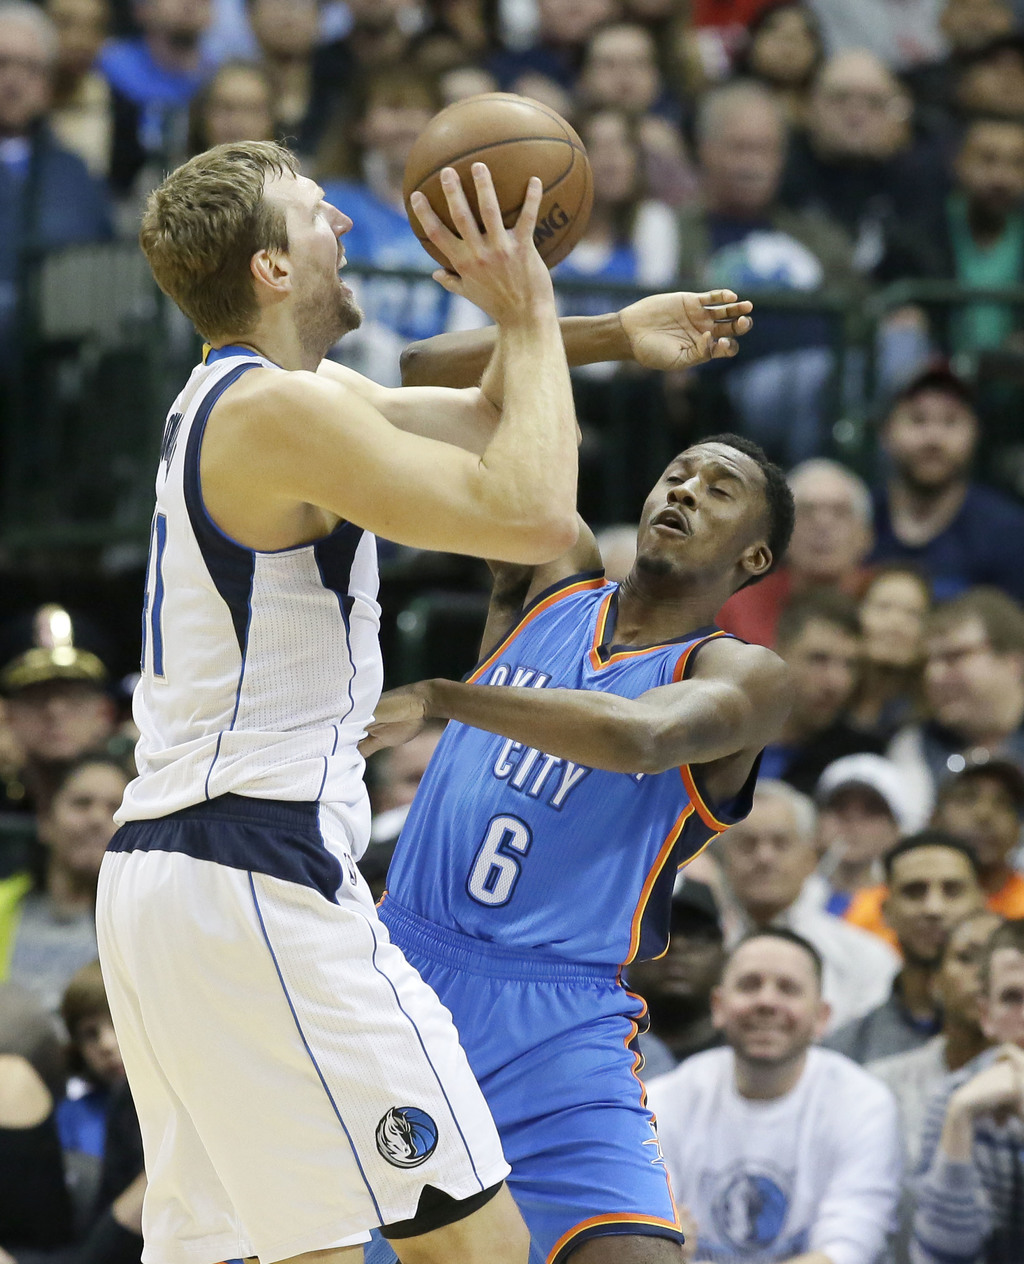 Dallas Mavericks forward Dirk Nowitzki (41) of Germany shoots against Oklahoma City Thunder guard Semaj Christon (6) during the first h...